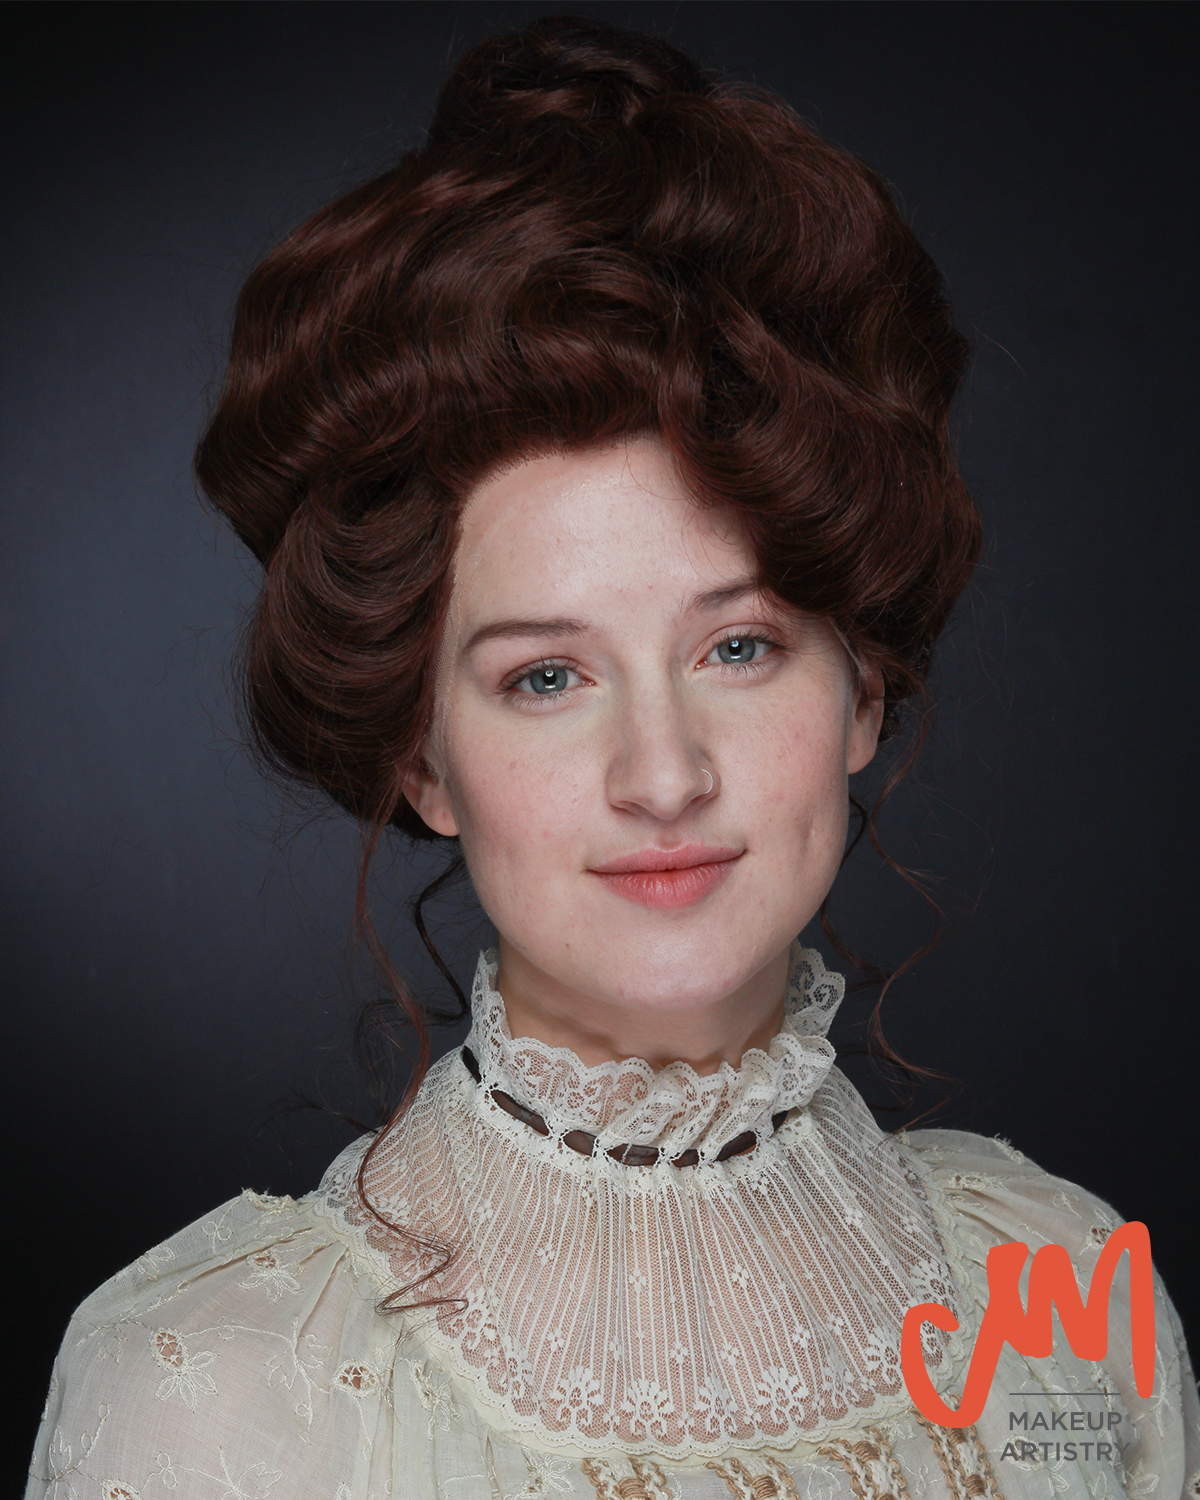 gibson, wig maker, period hairstyle, natural makeup, no makeup makeup, gibson girl, wig, charles dana gibson, super lace front wig